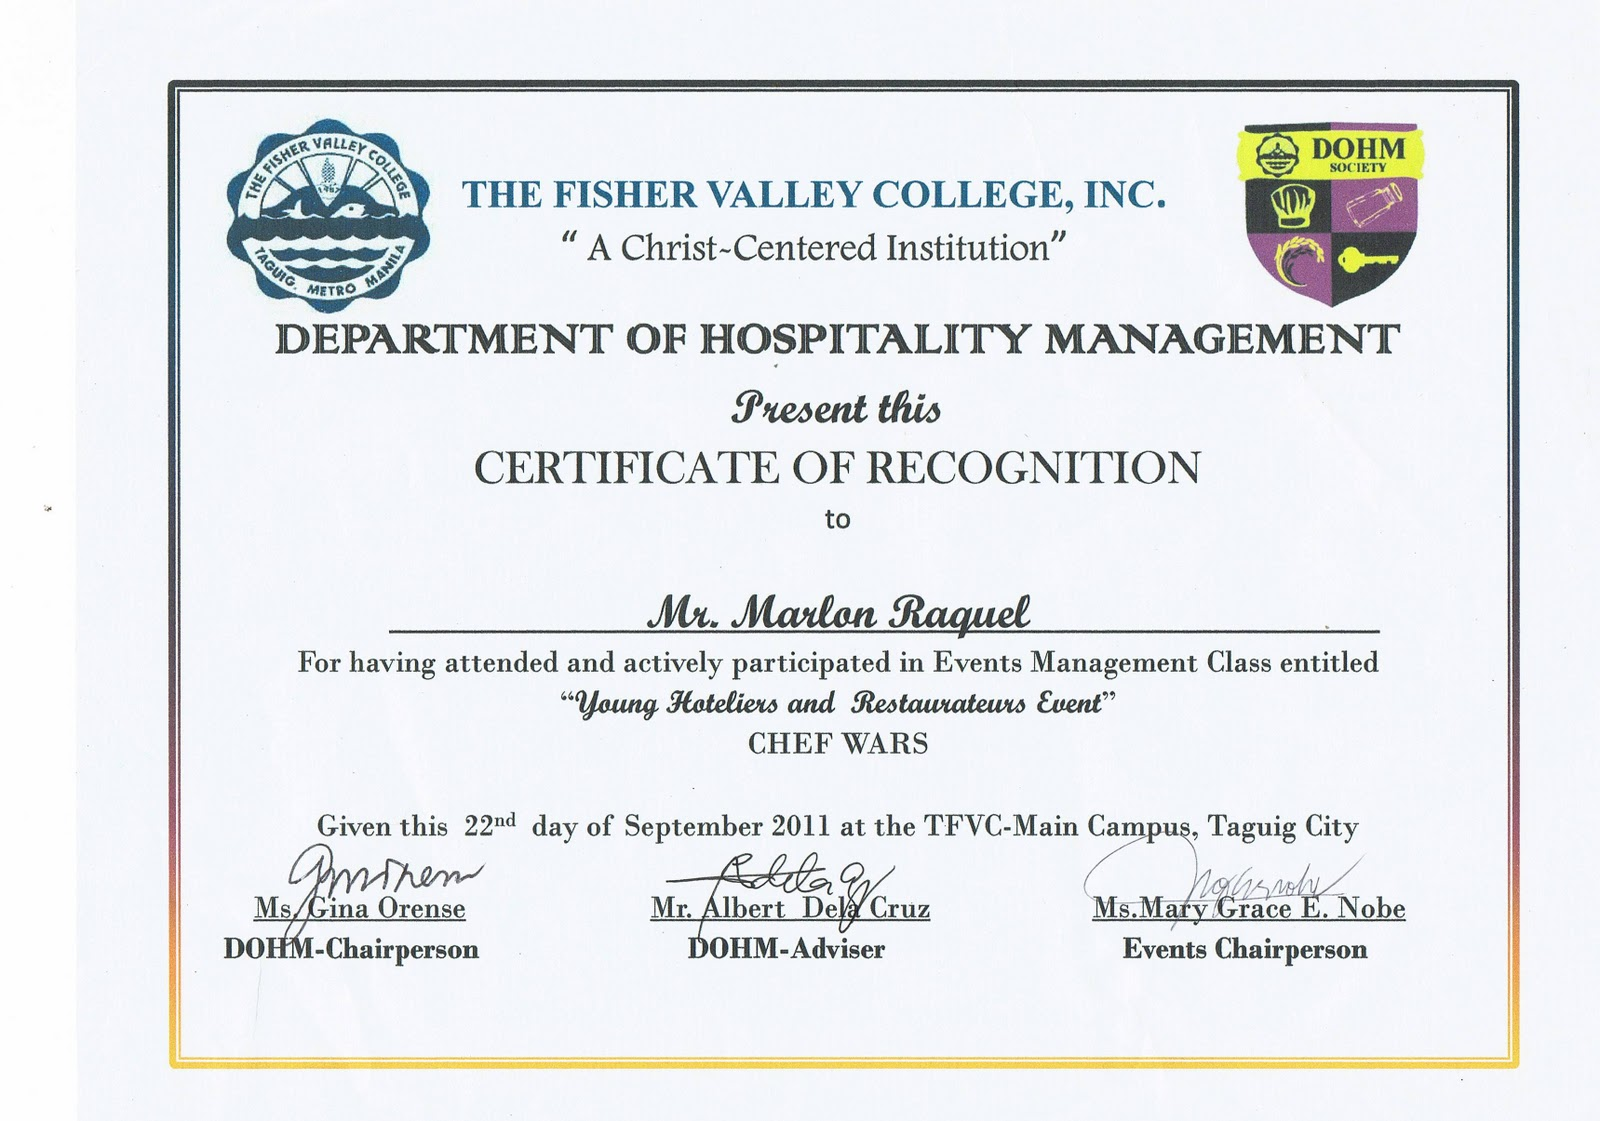 The fisher valley college certificate of recognition on young certificate of recognition on young hoteliers and restaurateurs event chef wars yadclub